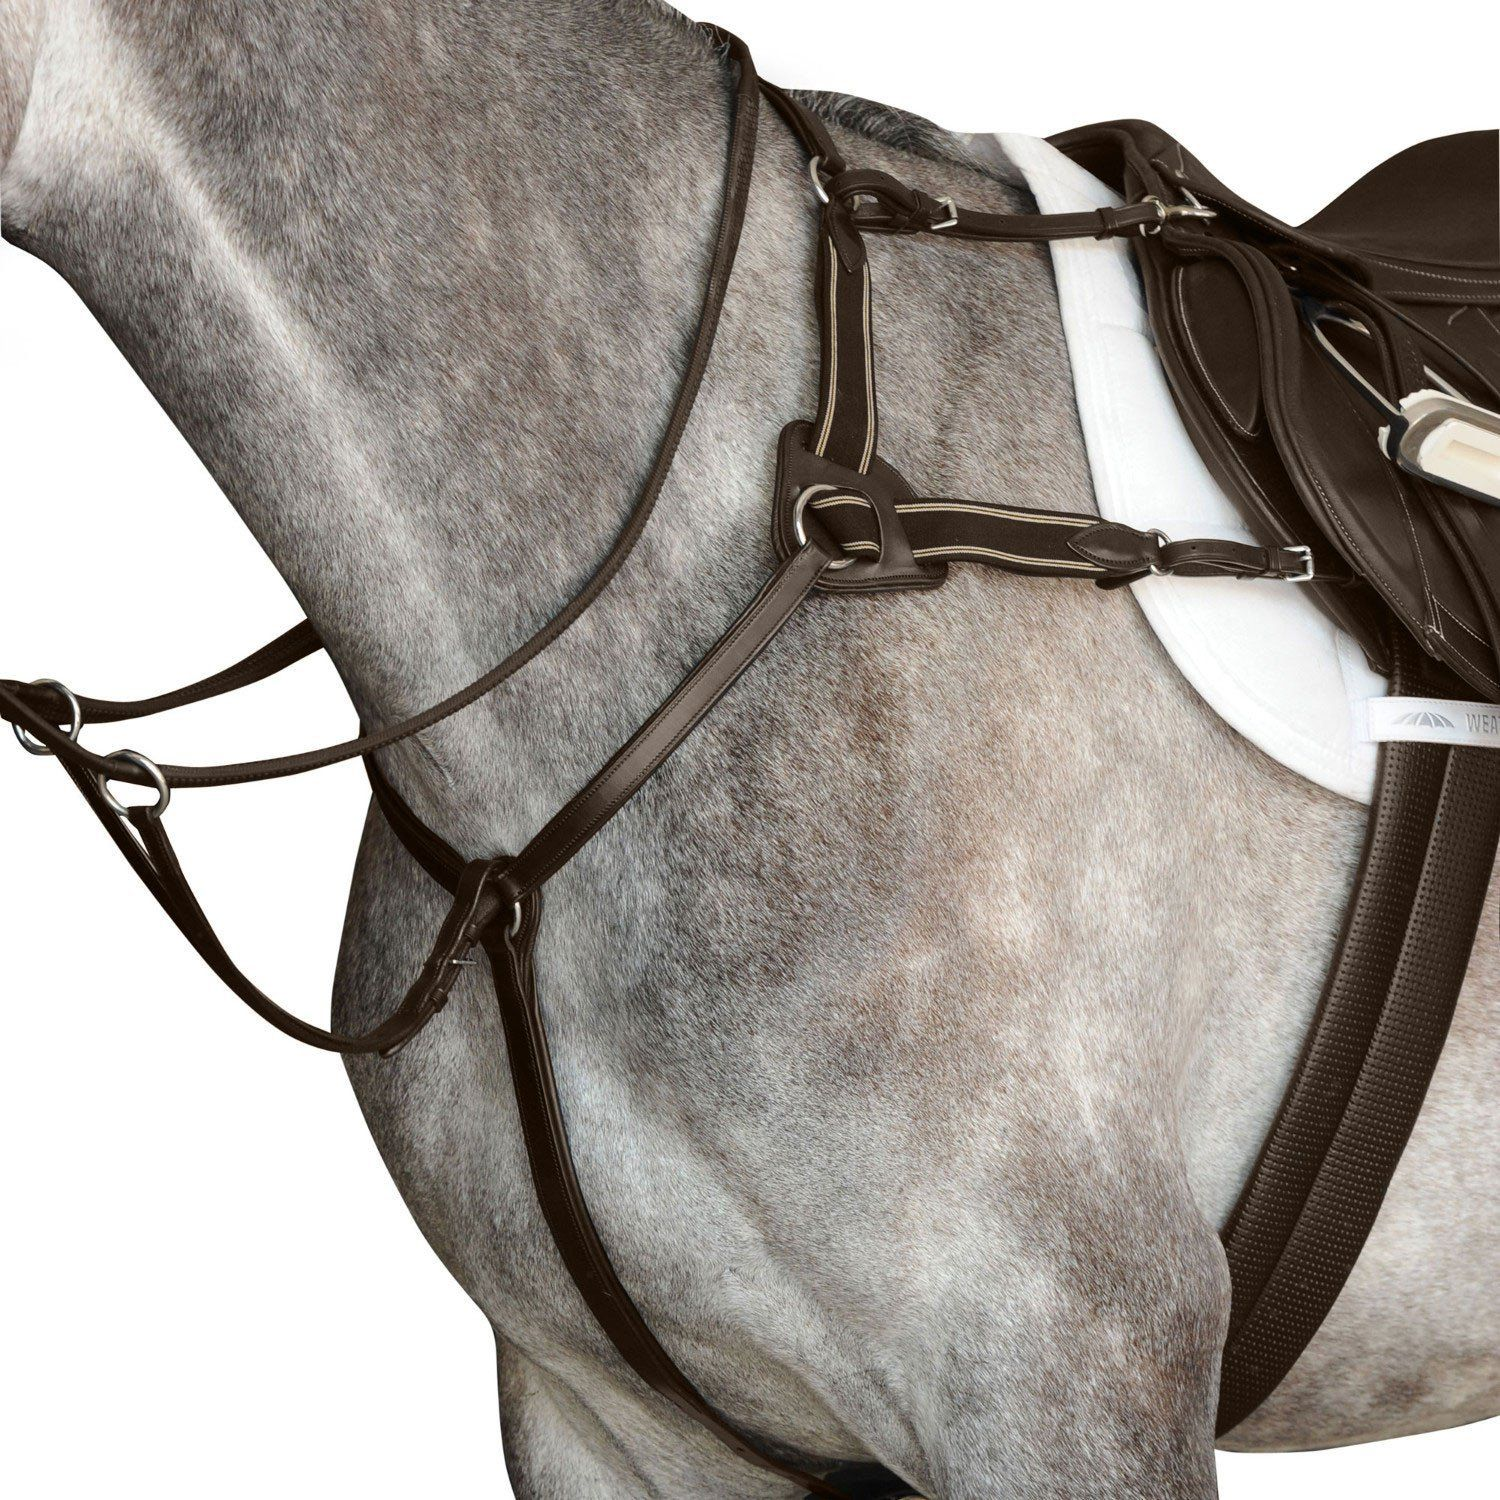 Collegiate 5-Point Leder Leder Leder Breastplate IV with Stainless Steel Fittings 430f4f